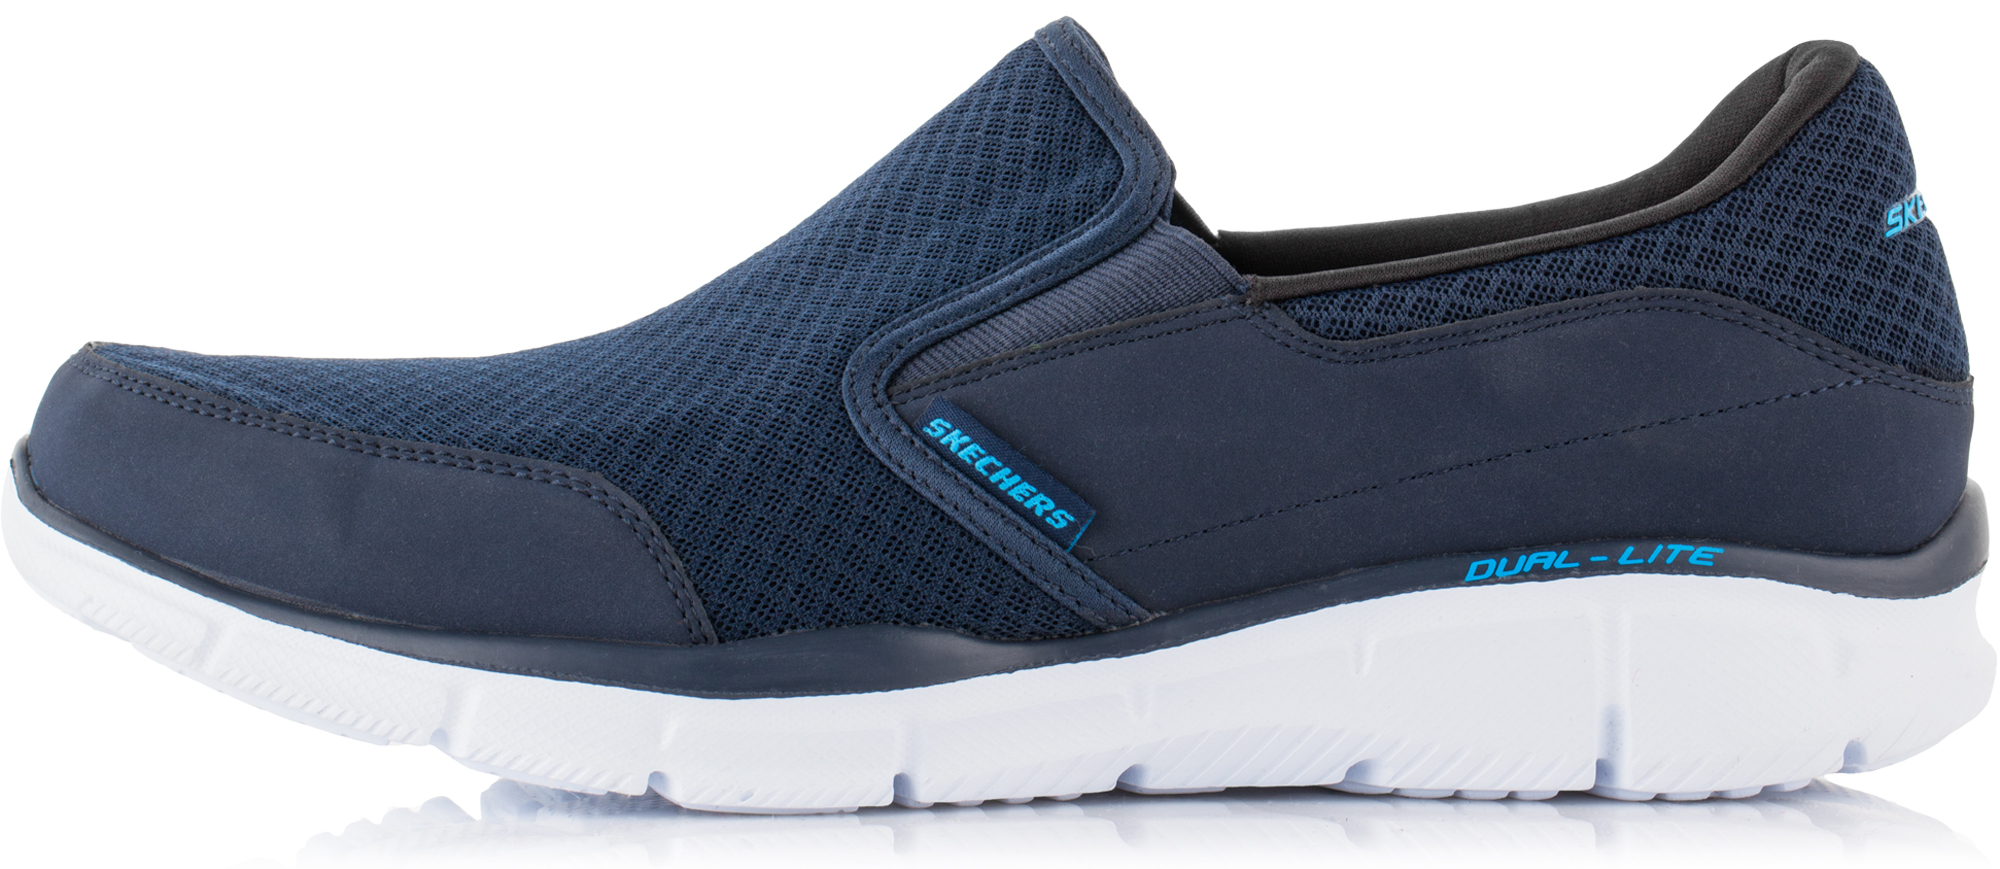 Skechers Кроссовки мужские Skechers Equalizer- Persistent skechers energy light